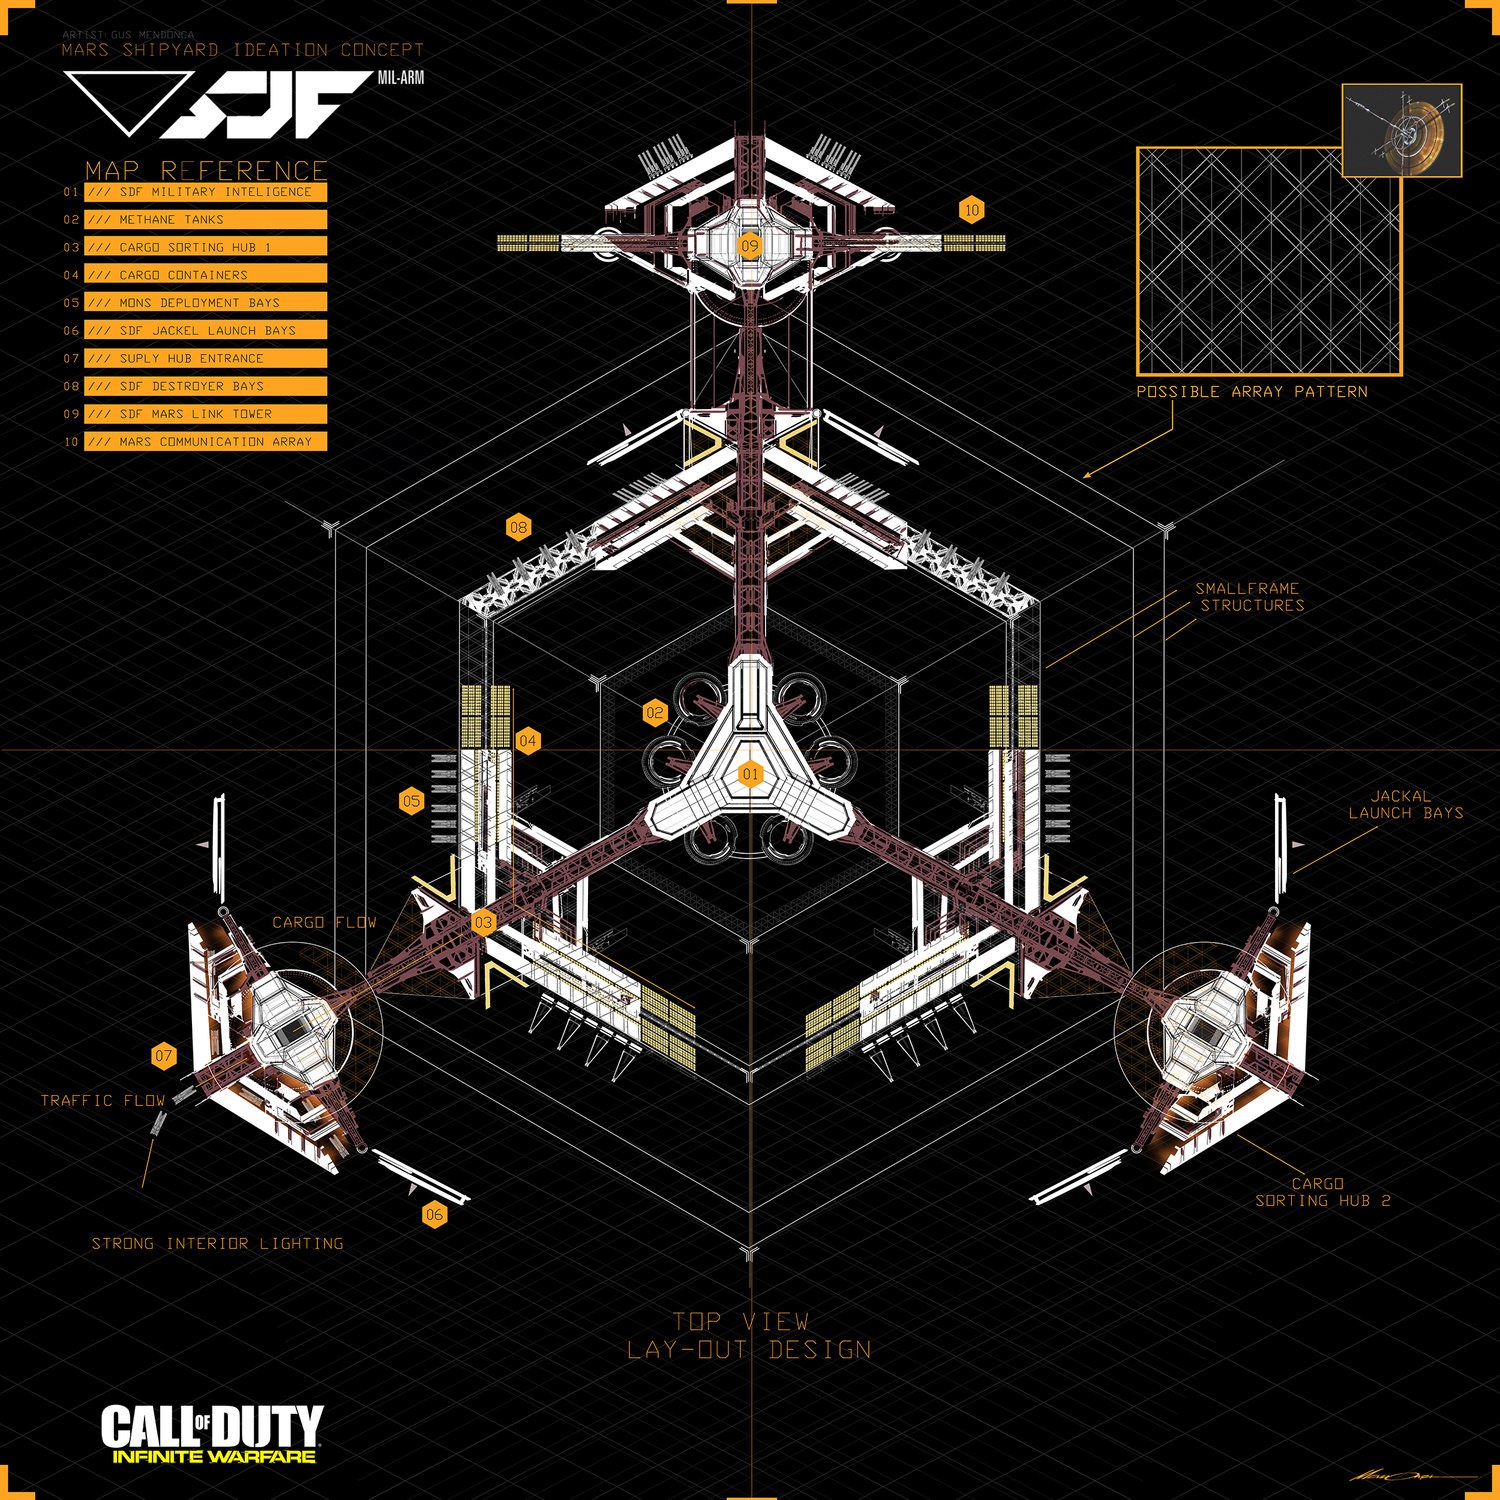 Call of Duty: Infinite Warfare Concept Art by Gustavo Mendonca